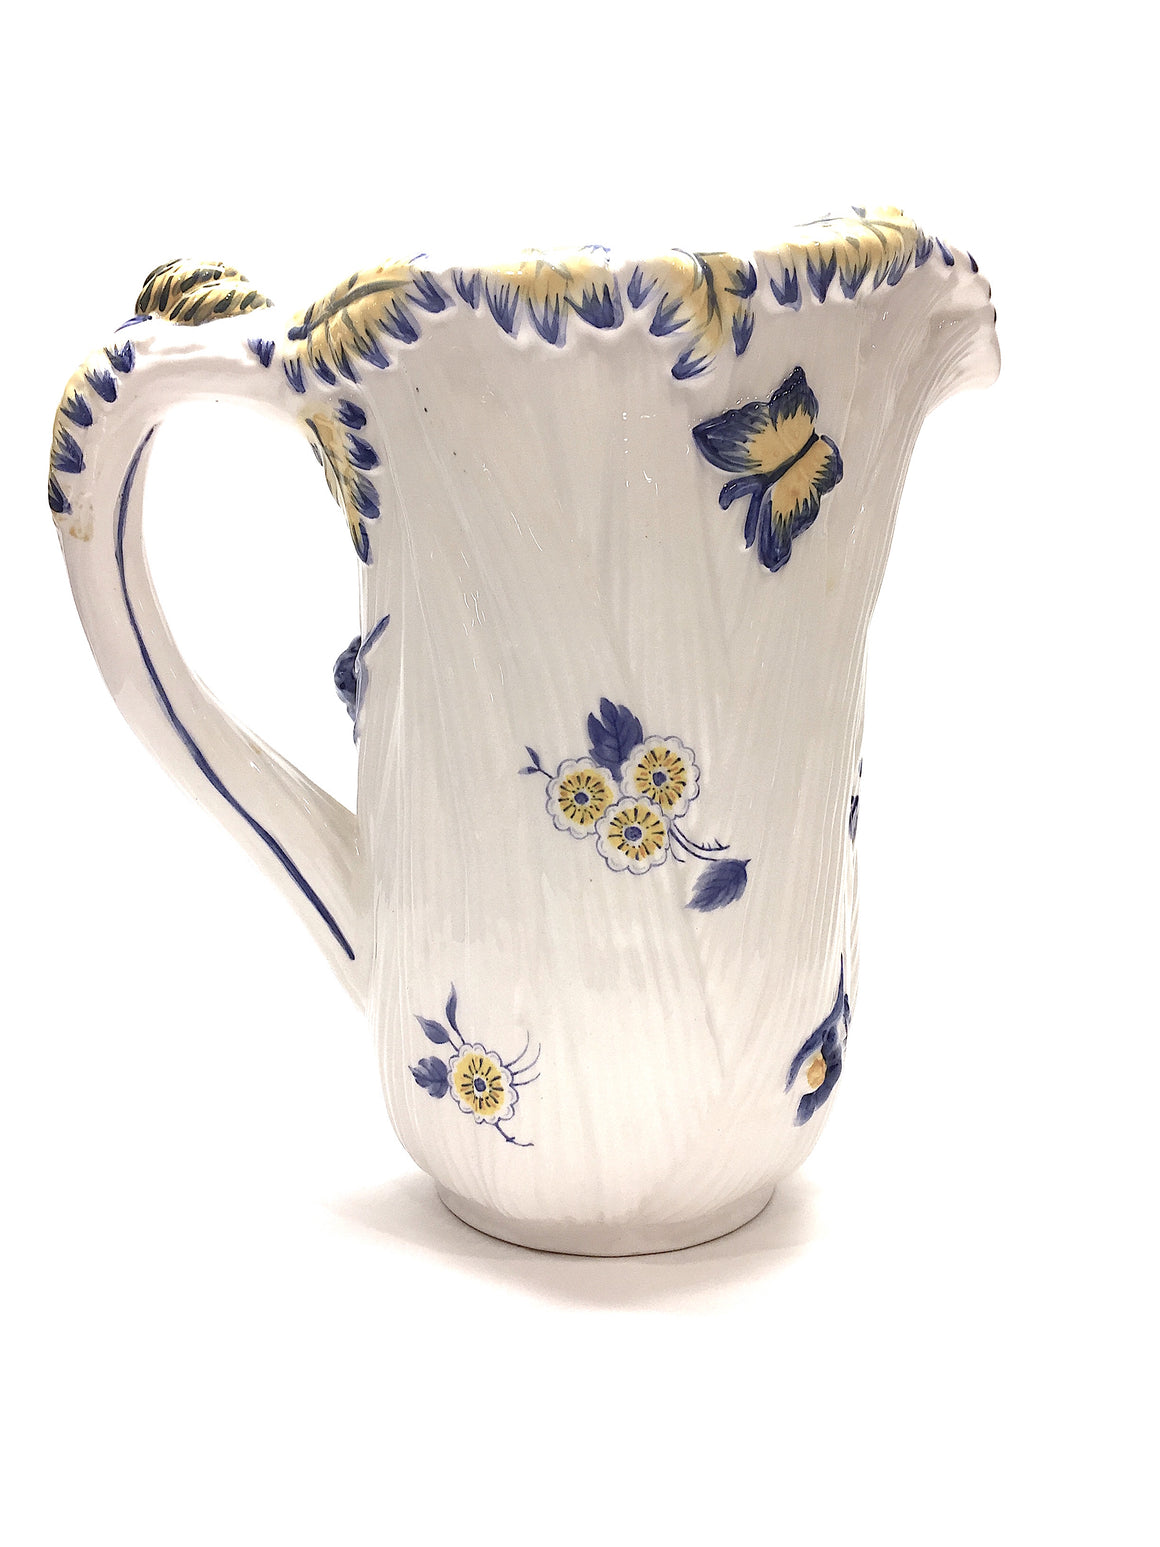 SPODE - IMPERIAL GARDEN White Yellow Royal-Blue Floral-Pattern Ceramic Pitcher